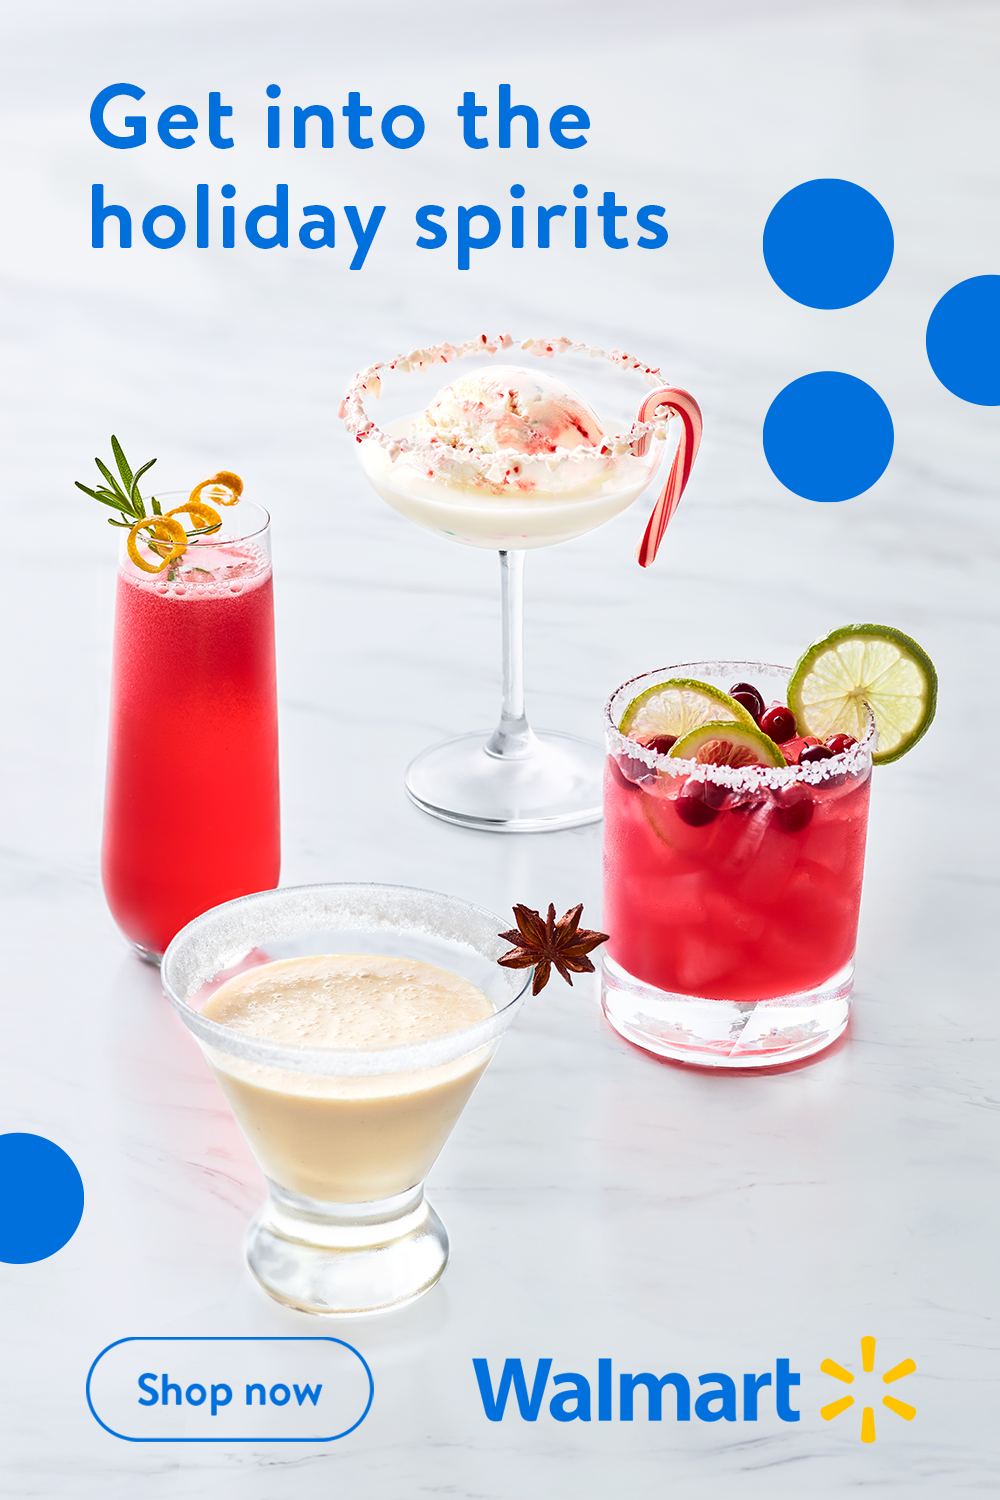 Make the holidays merry and bright with these tasty seasonal cocktails from Walmart. Whether you prefer a drink that's cold and creamy or fruity and refreshing, we have the recipes that'll keep you sipping in style all season long.